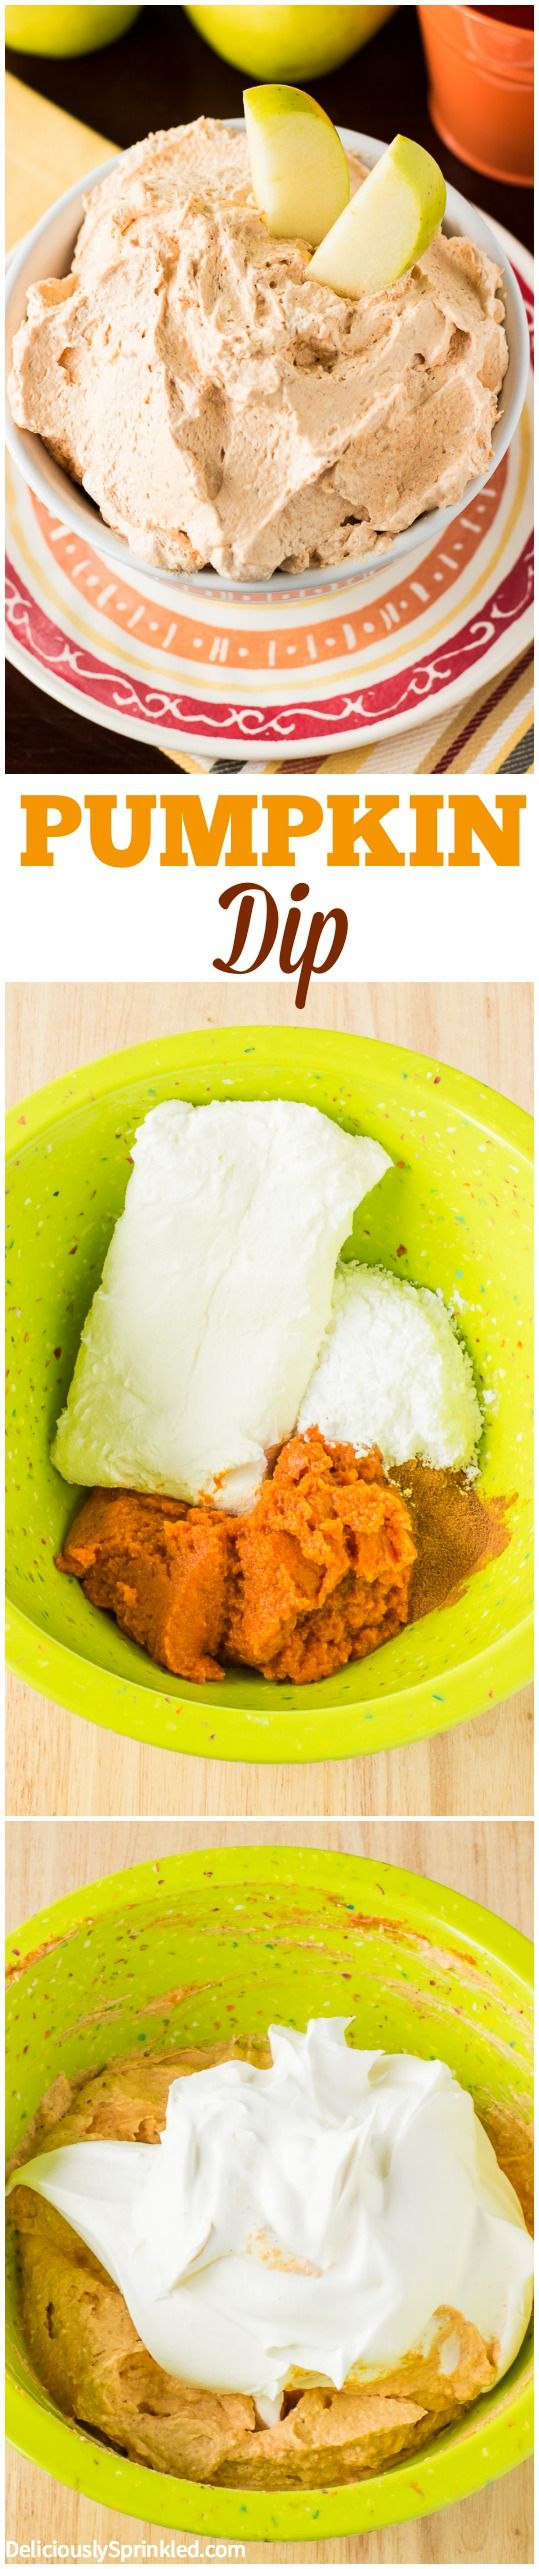 This Pumpkin Dip was a HUGE hit at our party! Everyone LOVED it, can't wait to make it again!